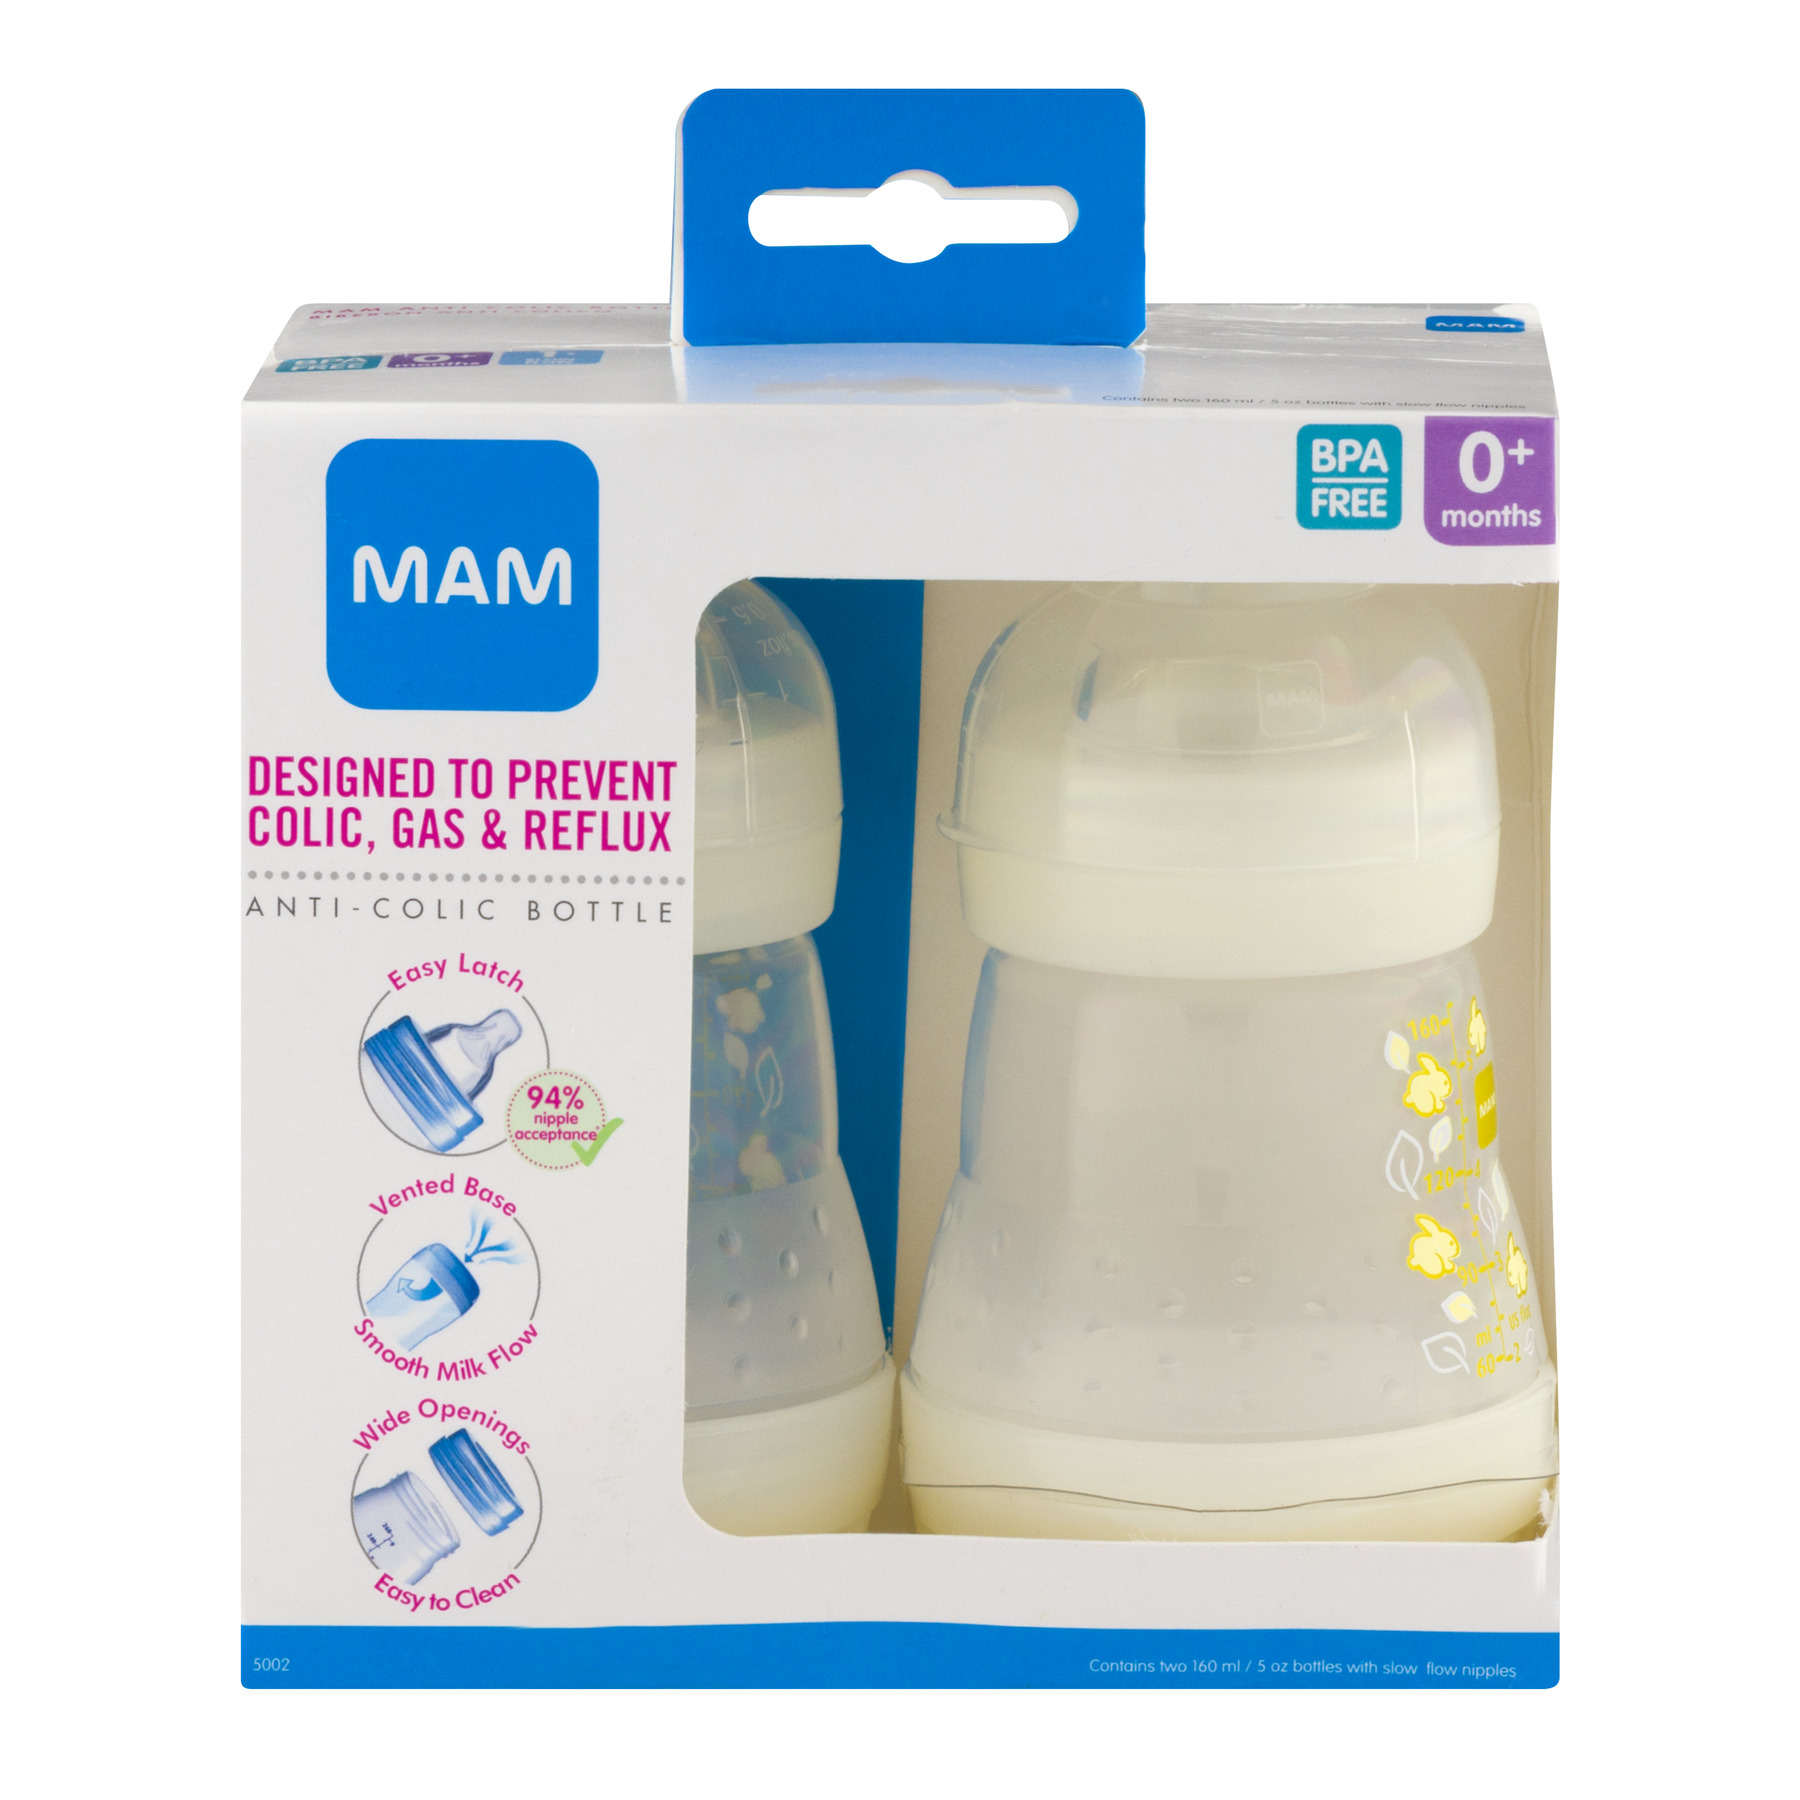 MAM Anti-Colic Bottle, COLORS MAY VARY, 5 oz, 2-Count